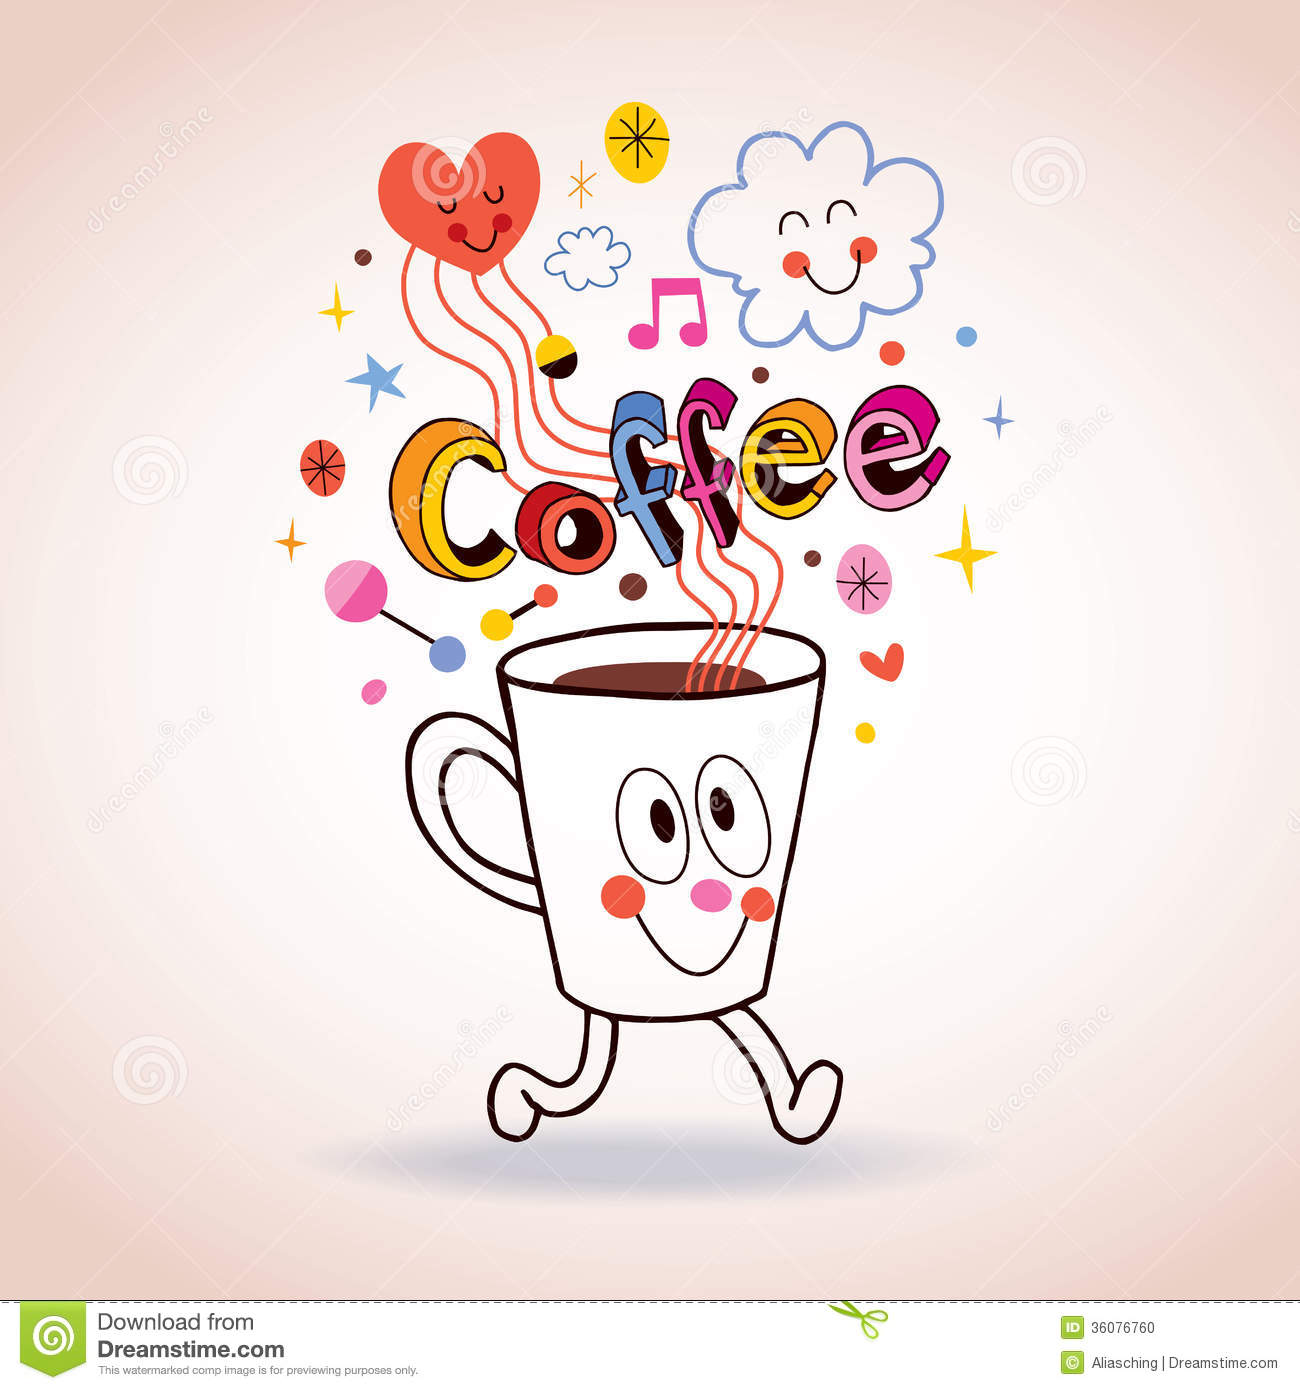 Cartoon Coffee Cup Illustration Stock Photo - Image: 36076760